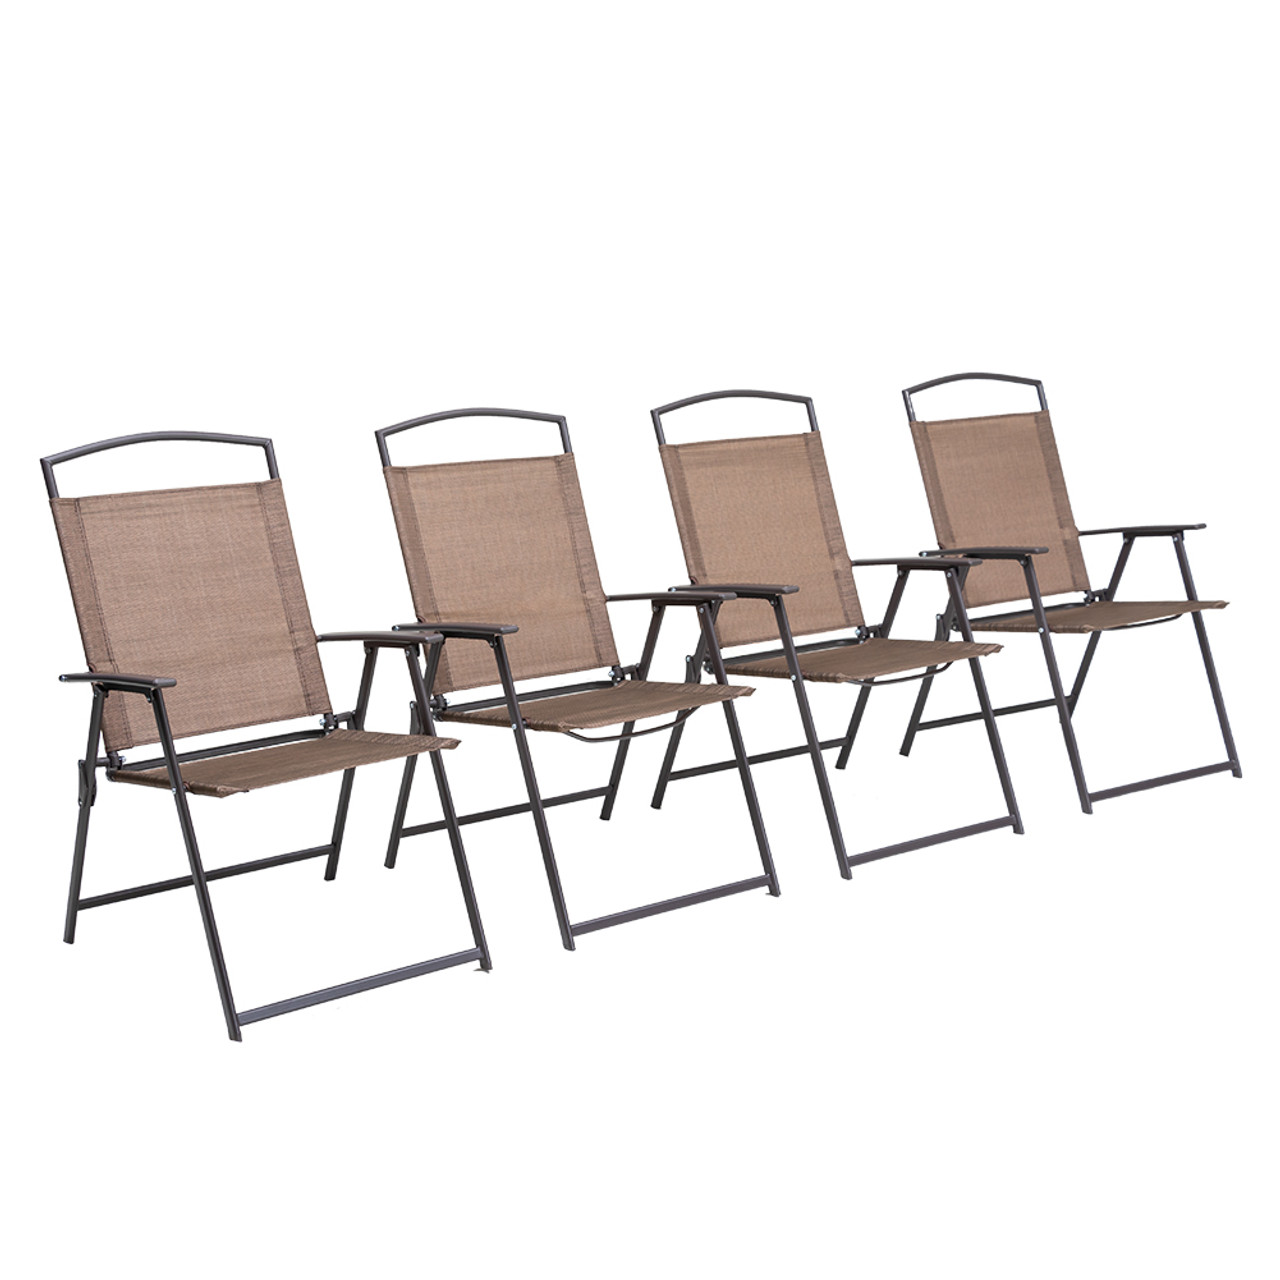 Details about  /2 PCS Patio Chairs Outdoor Dining Chair with Armrest